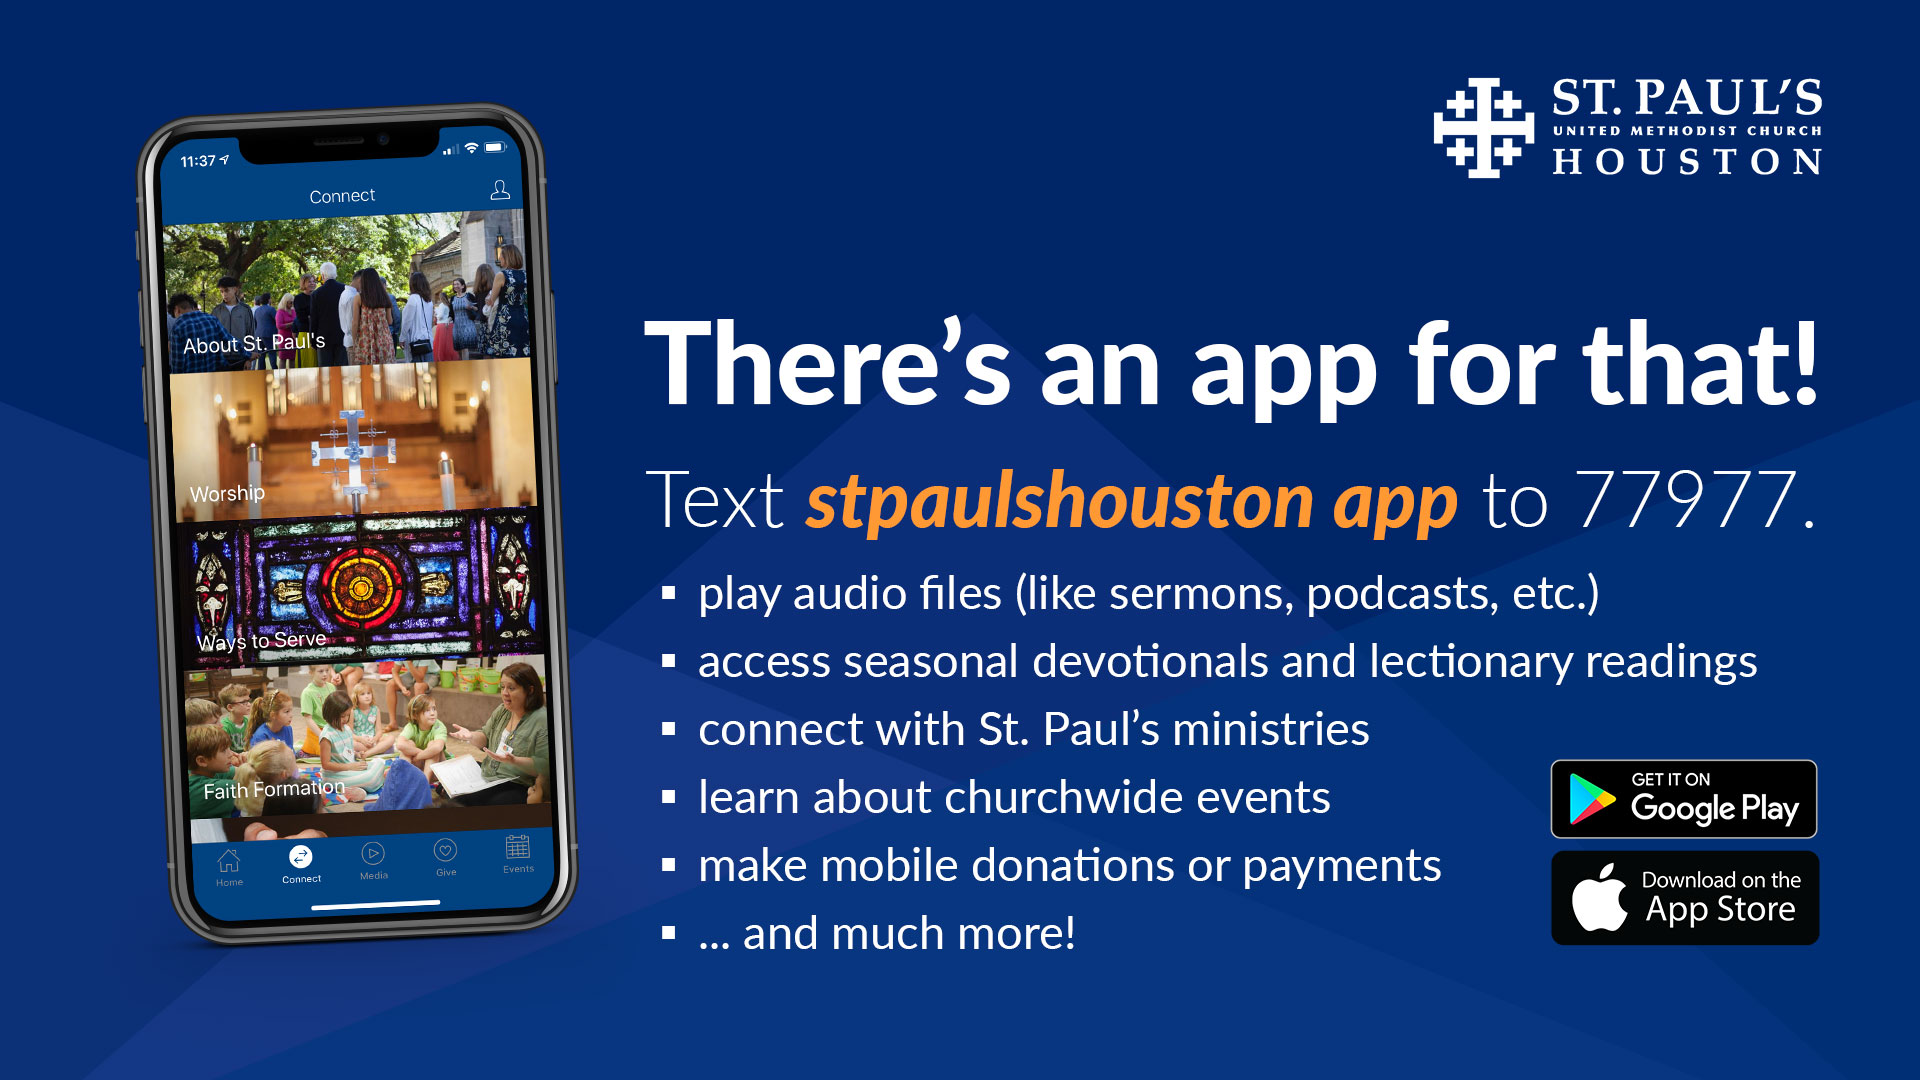 stpauls-has-an-app.jpg